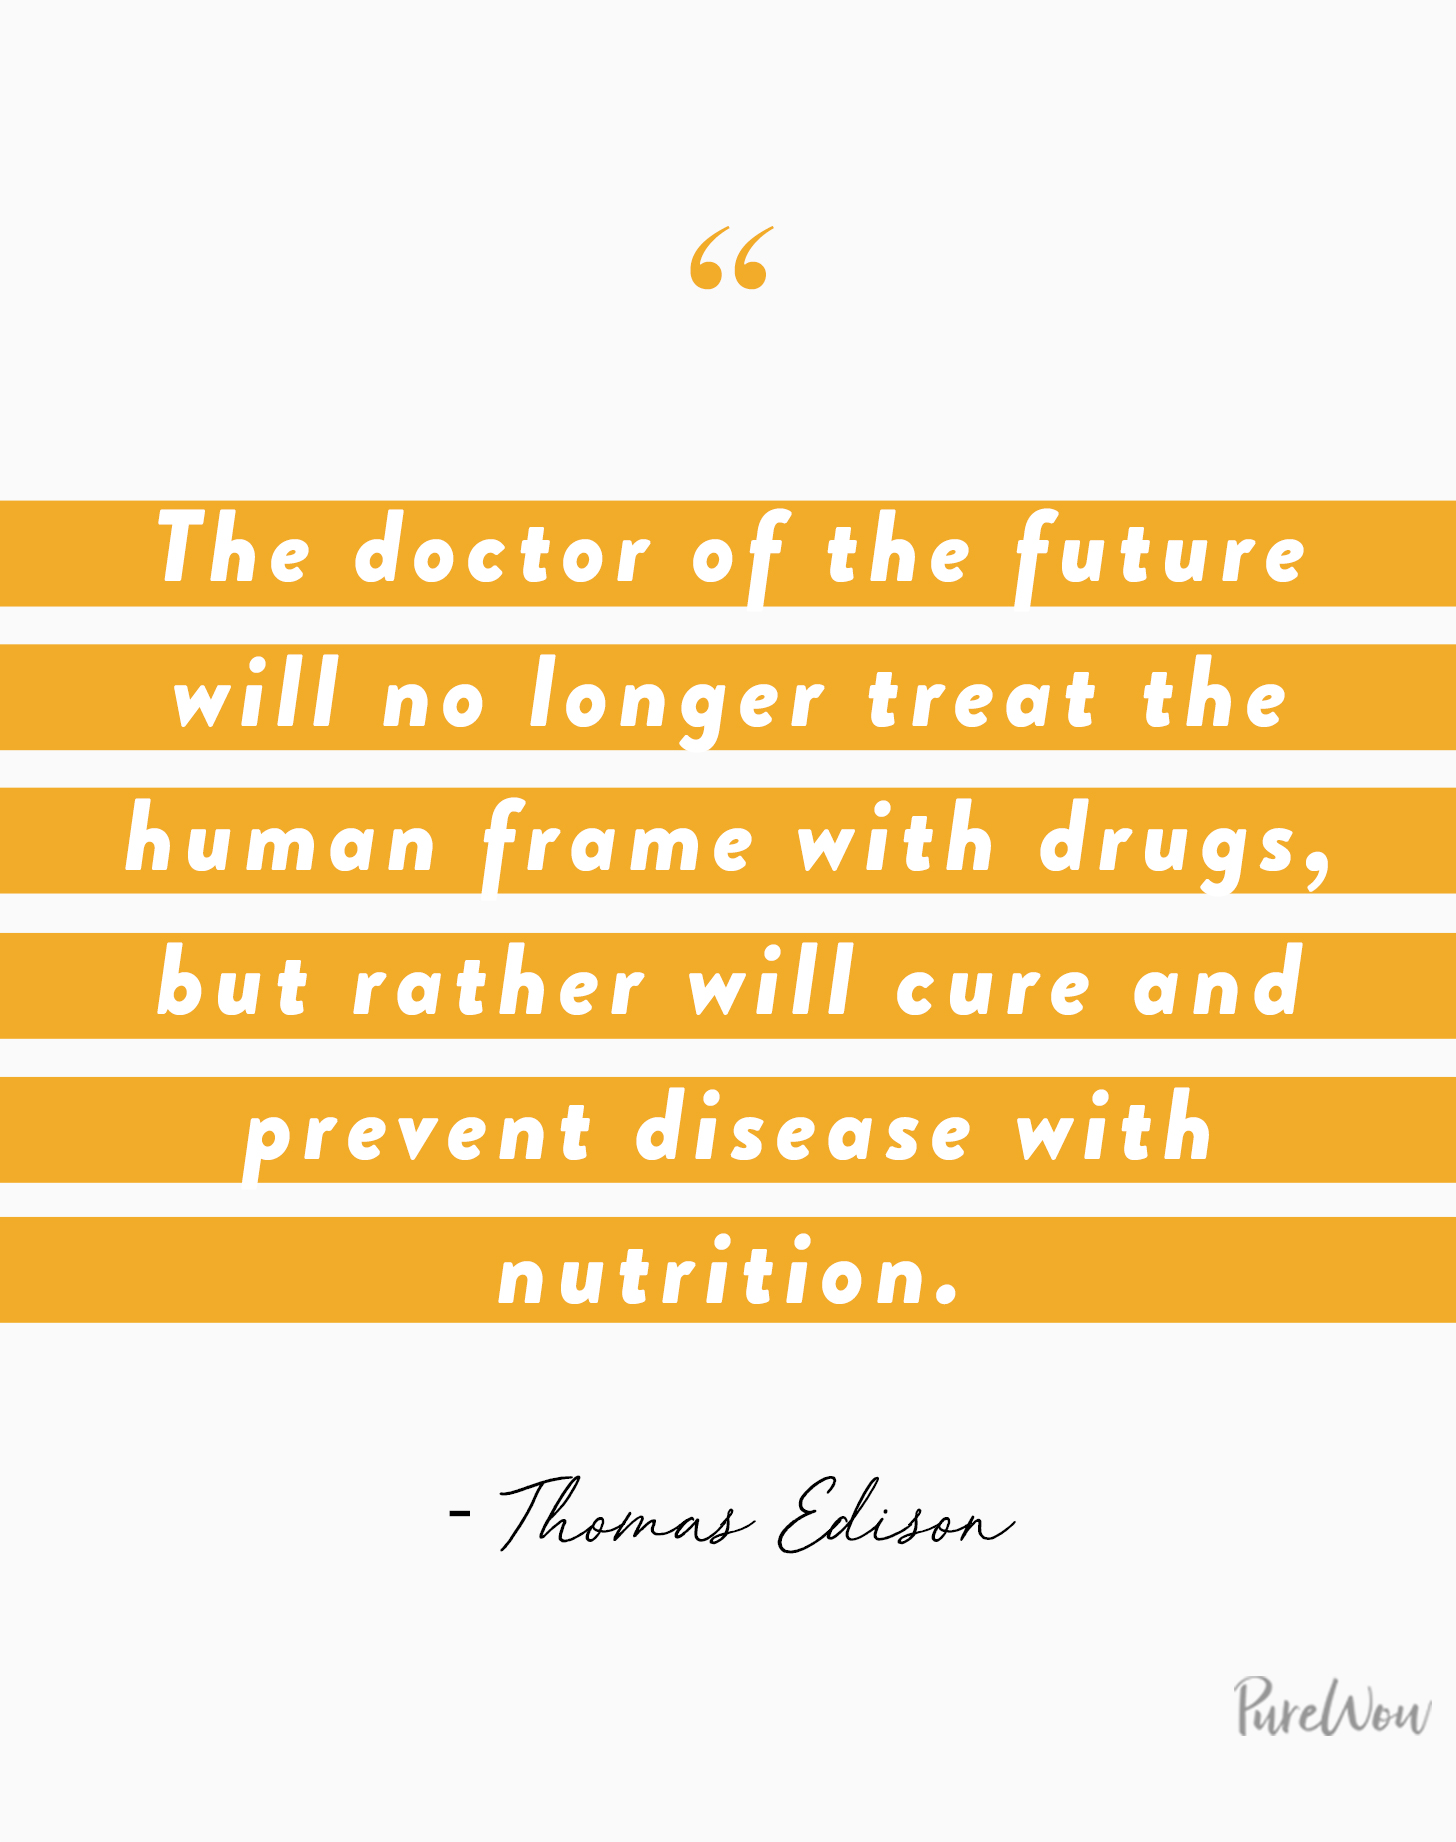 9 Healthy Eating Quotes To Motivate You To Make Better Choices Rue Now